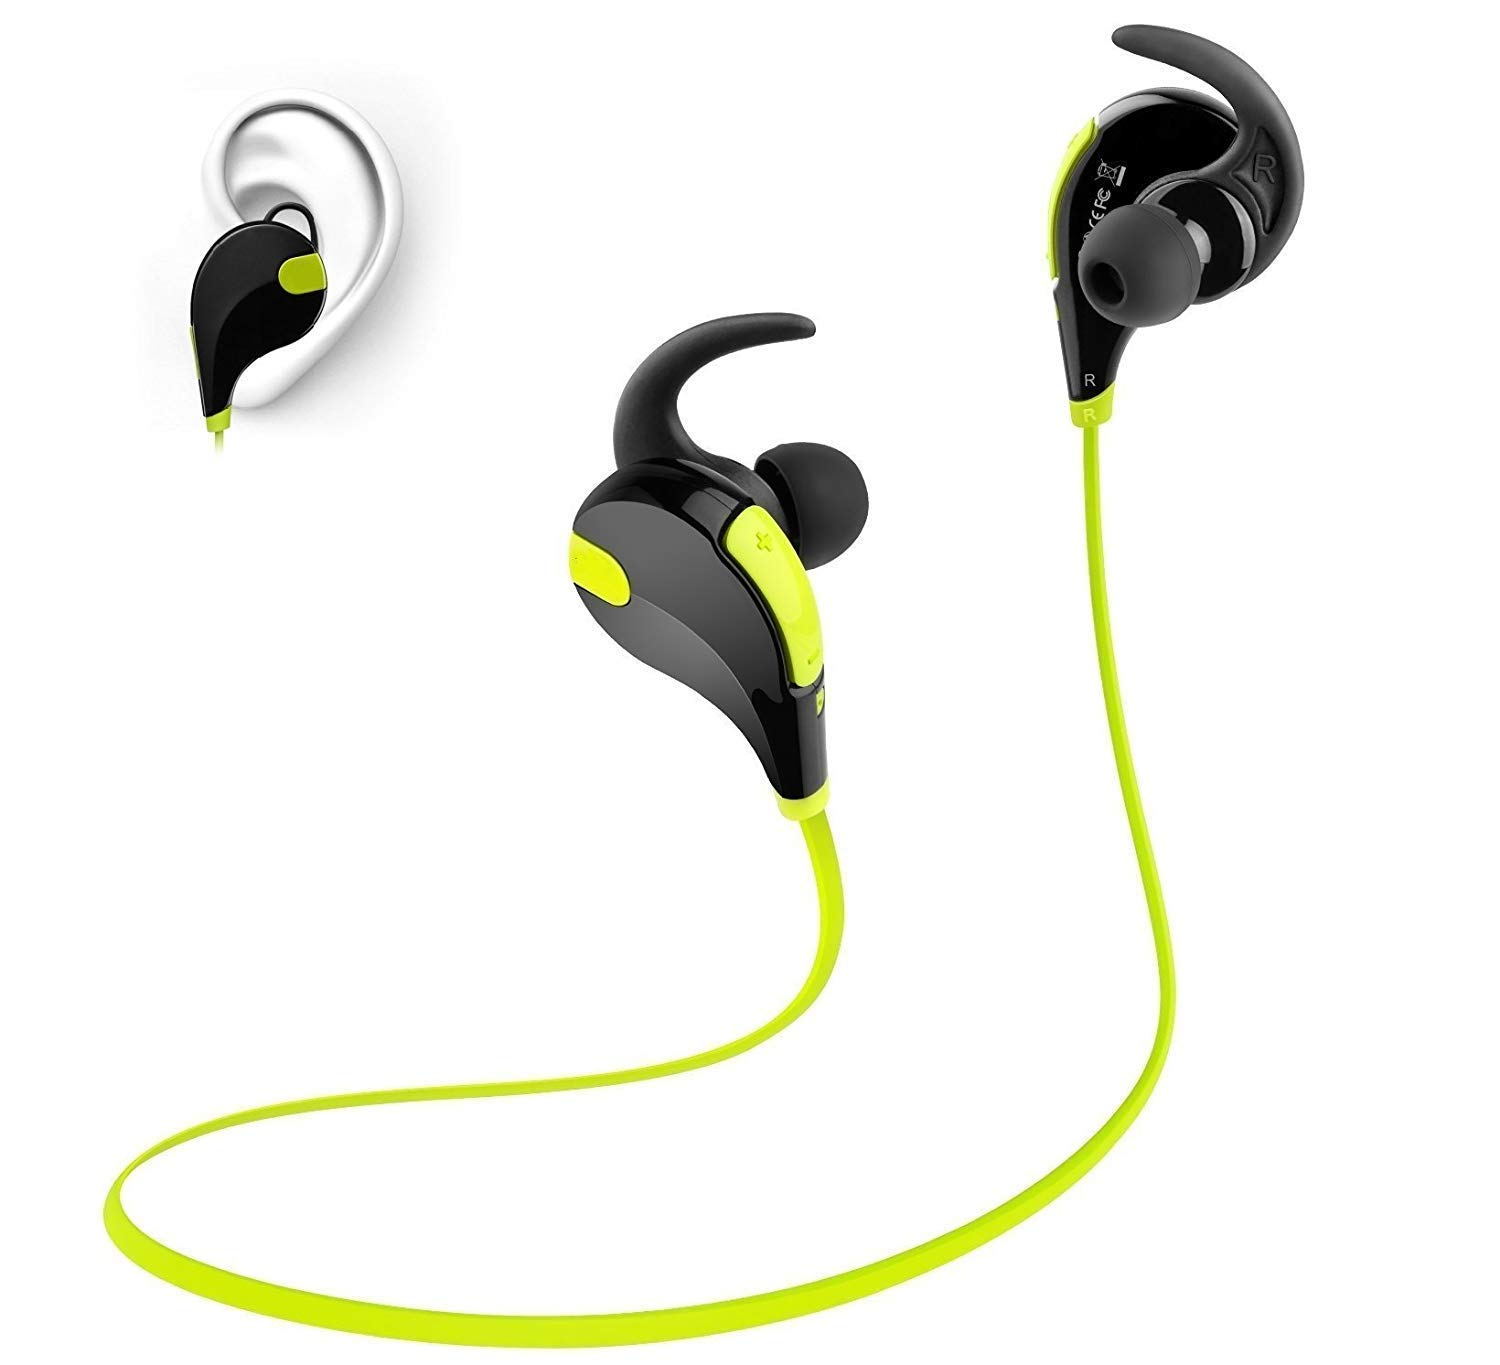 Soundpeats QY7 Bluetooth Headset with Mic  Black/Green  In Ear